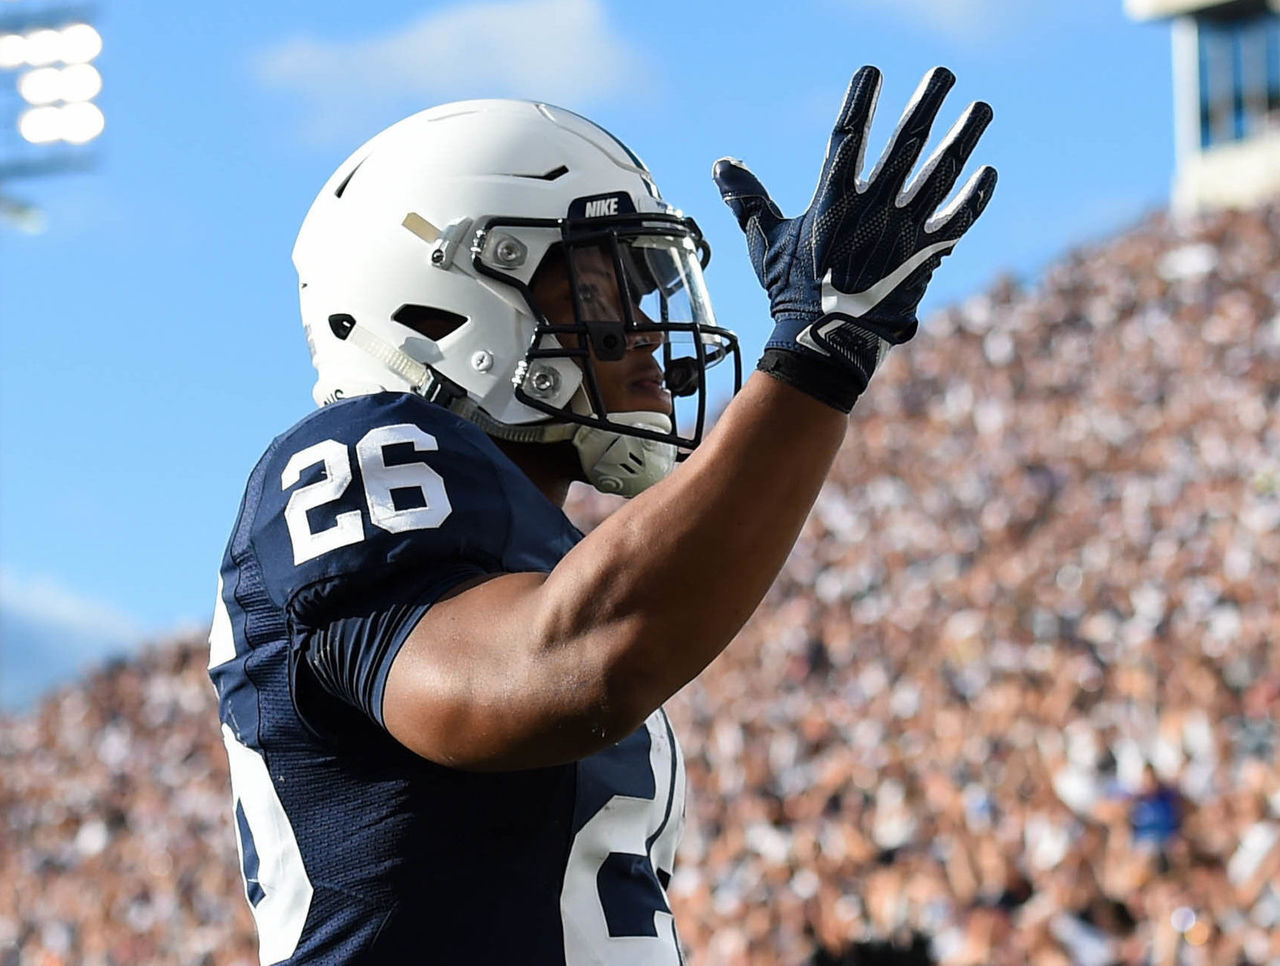 Saquon Barkley could be NFL's next highlight-reel superstar